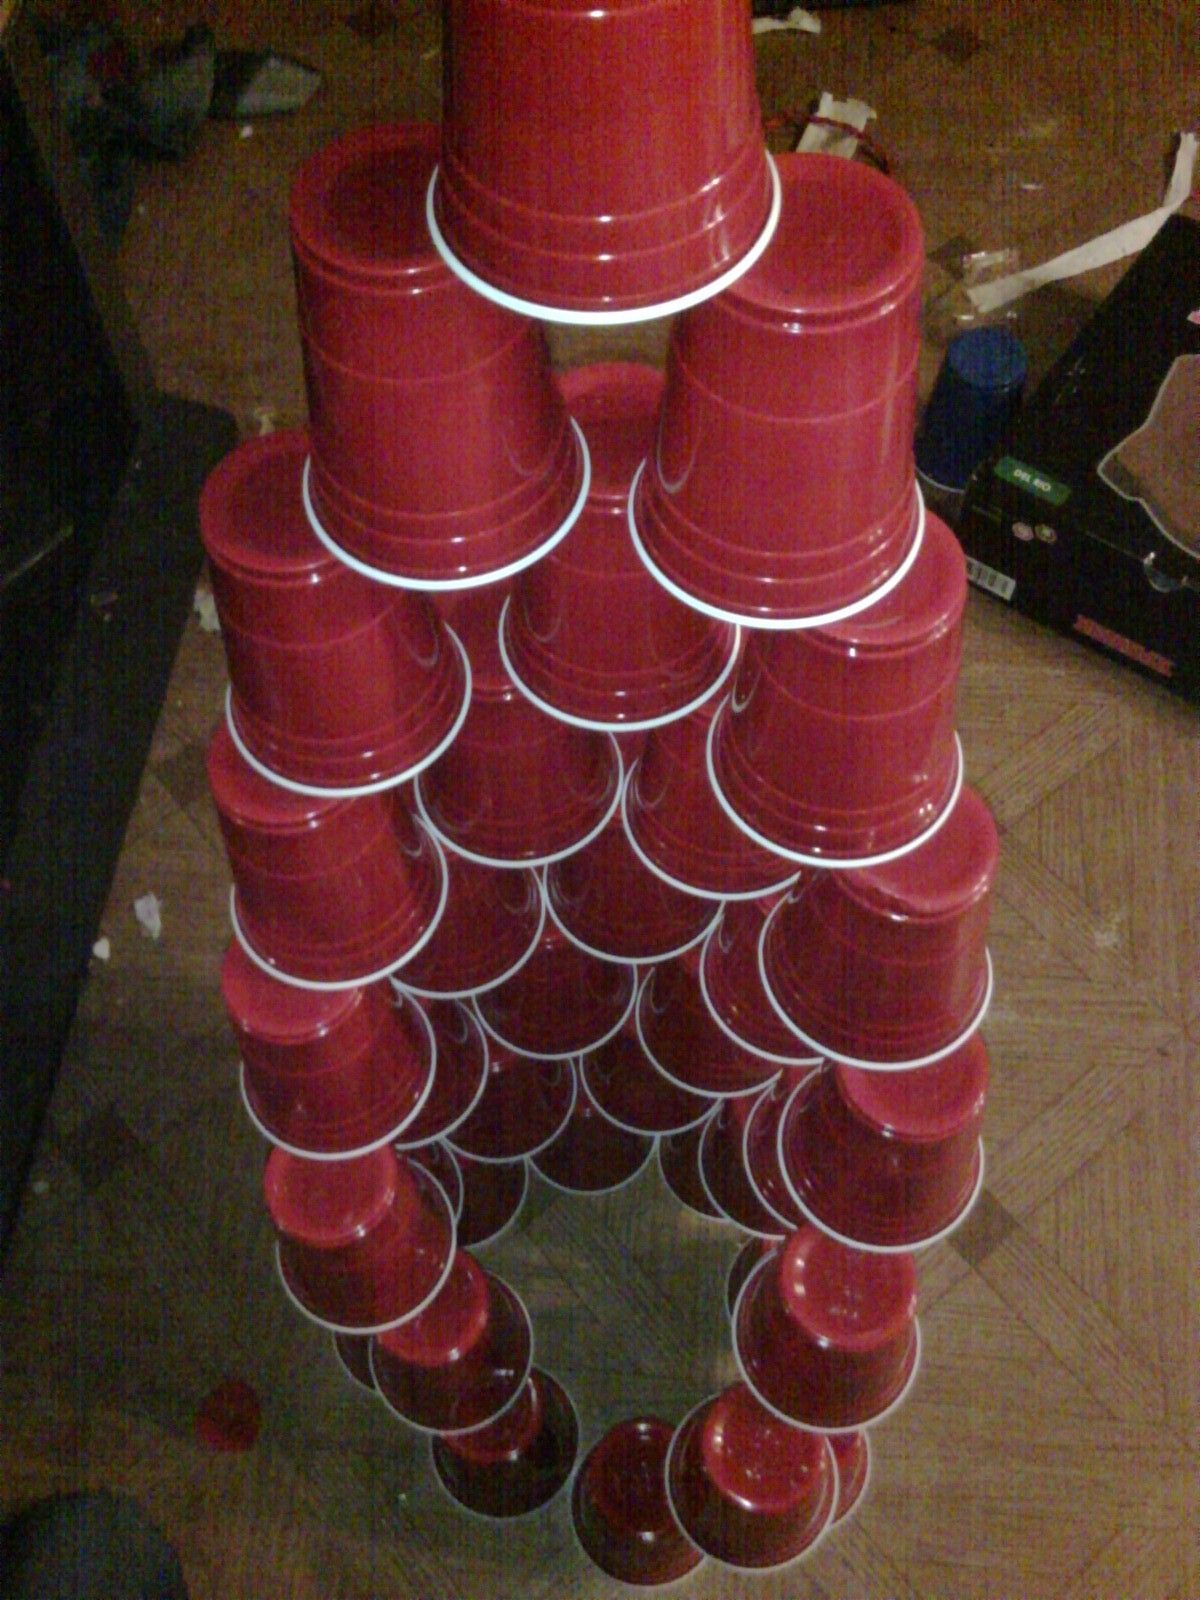 actually my son did this with red solo cups, he LOVES ...